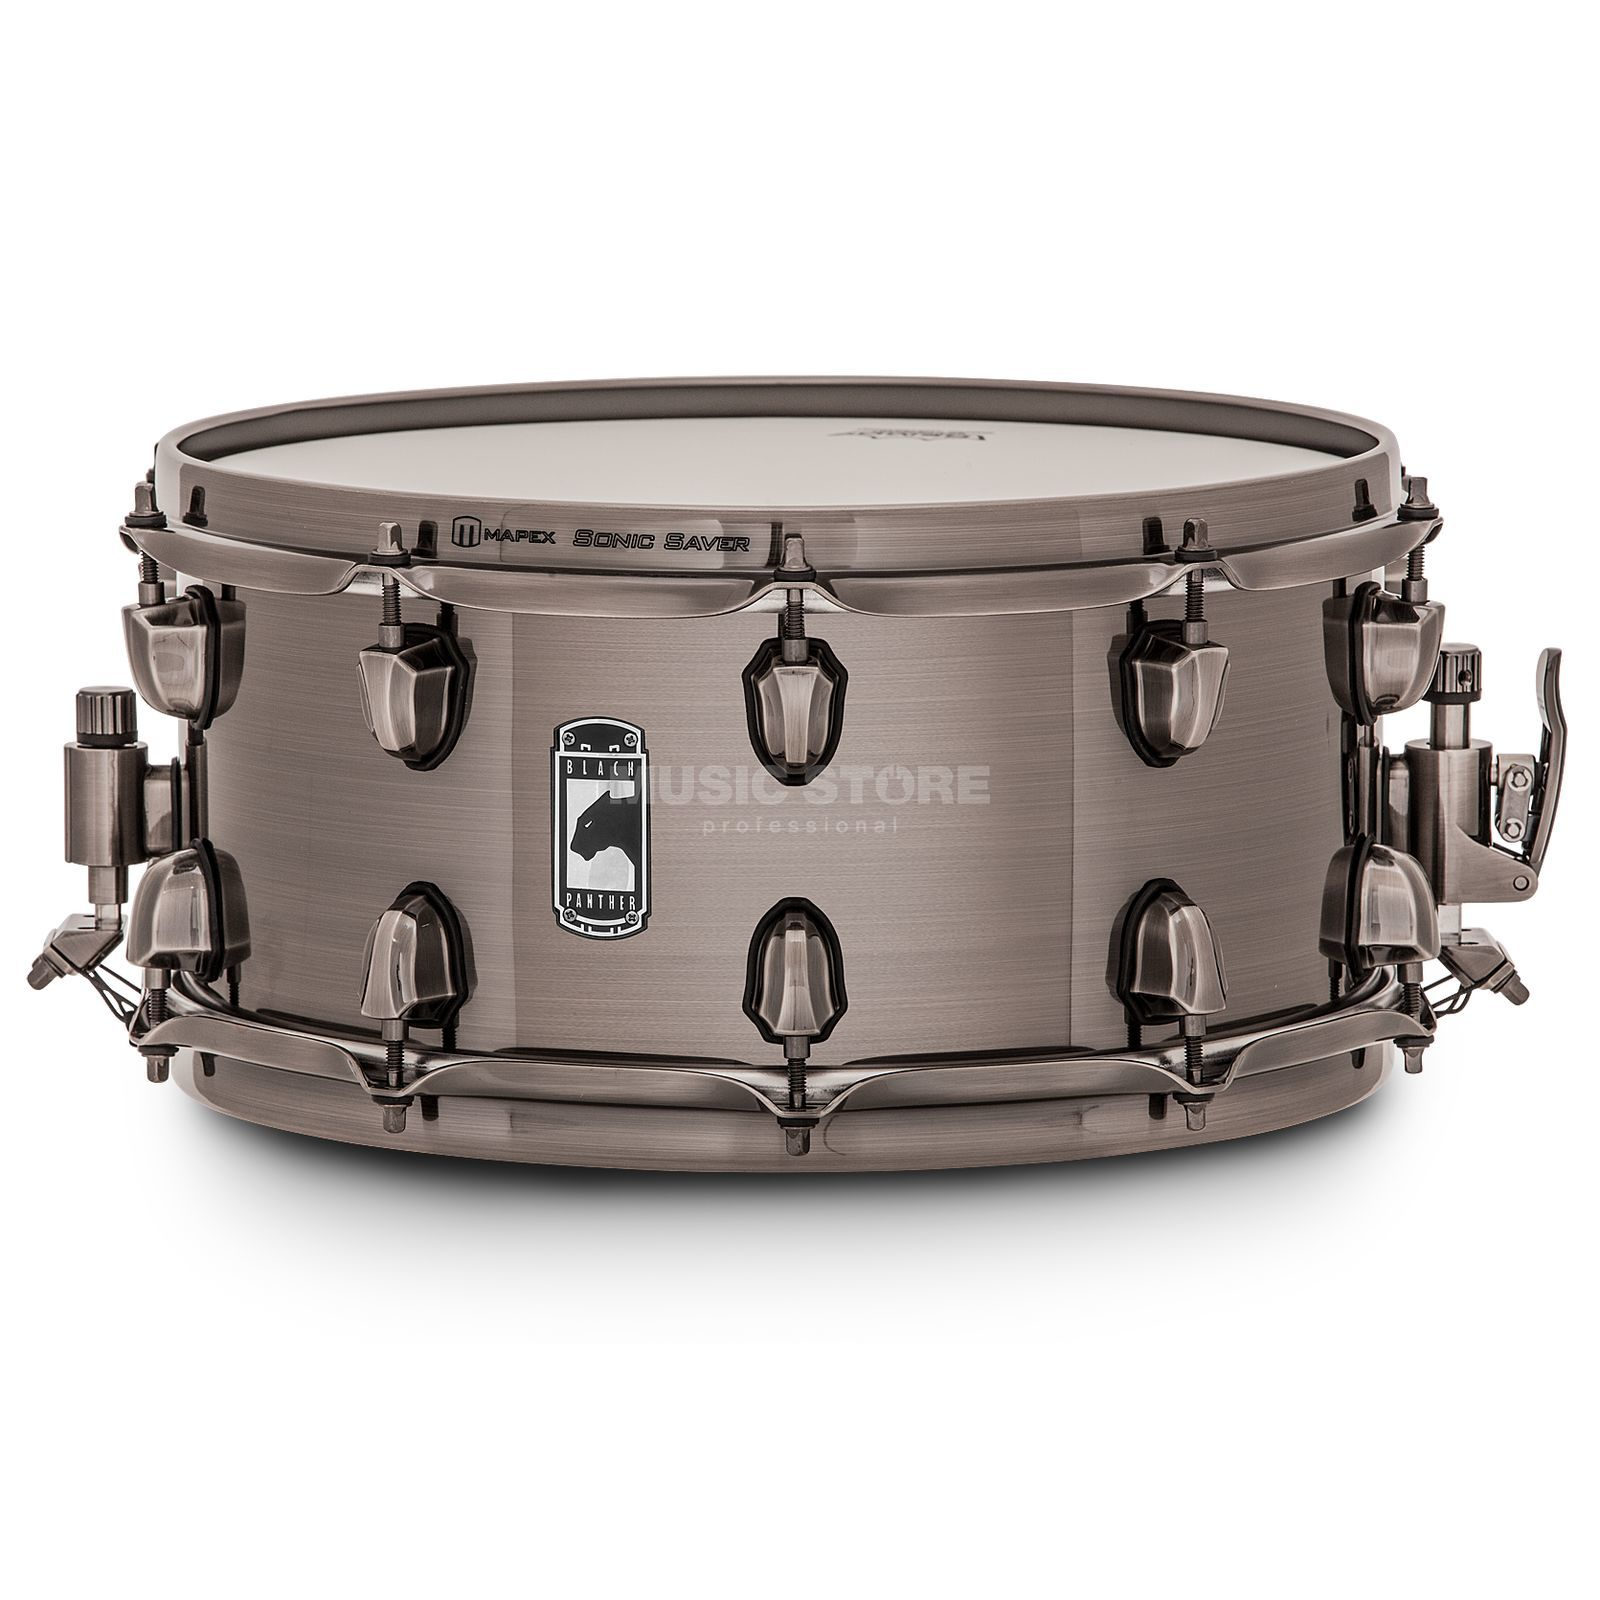 "Mapex Black Panther Snare 14""x6,5"", ""The Machete"" Product Image"